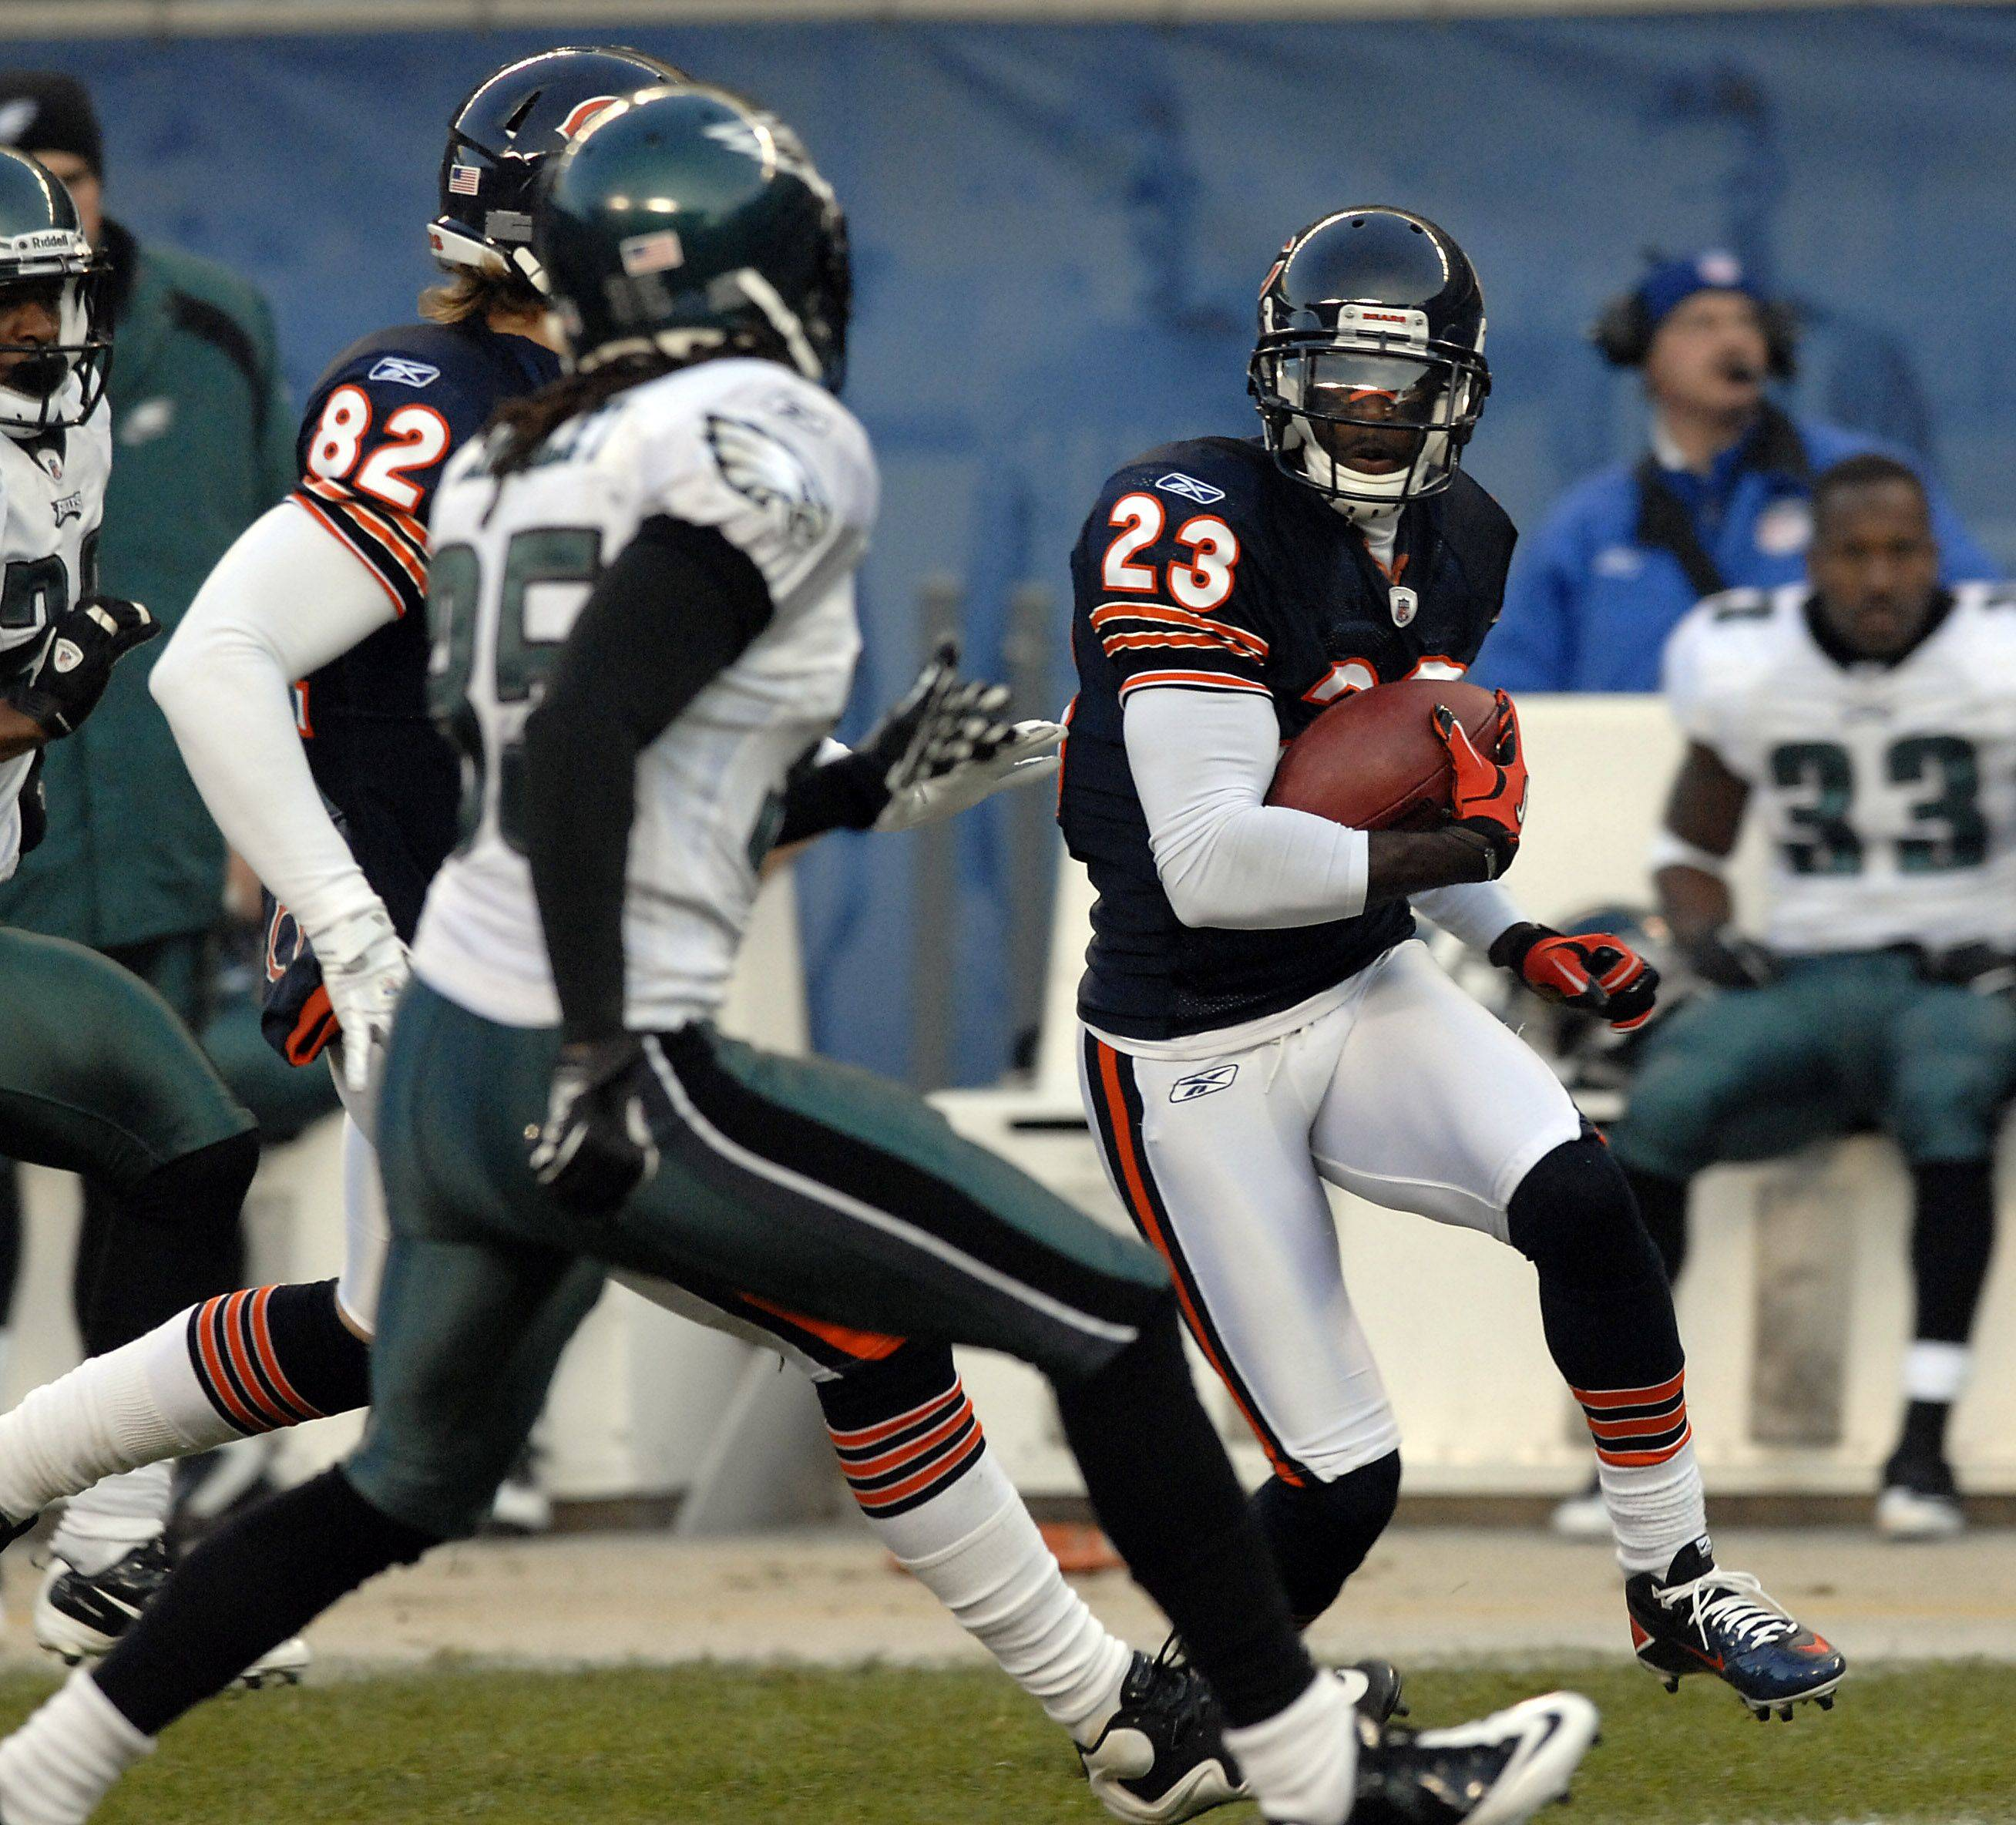 Bears Devin Hester on the move for yardage on his kick off return in the first half.